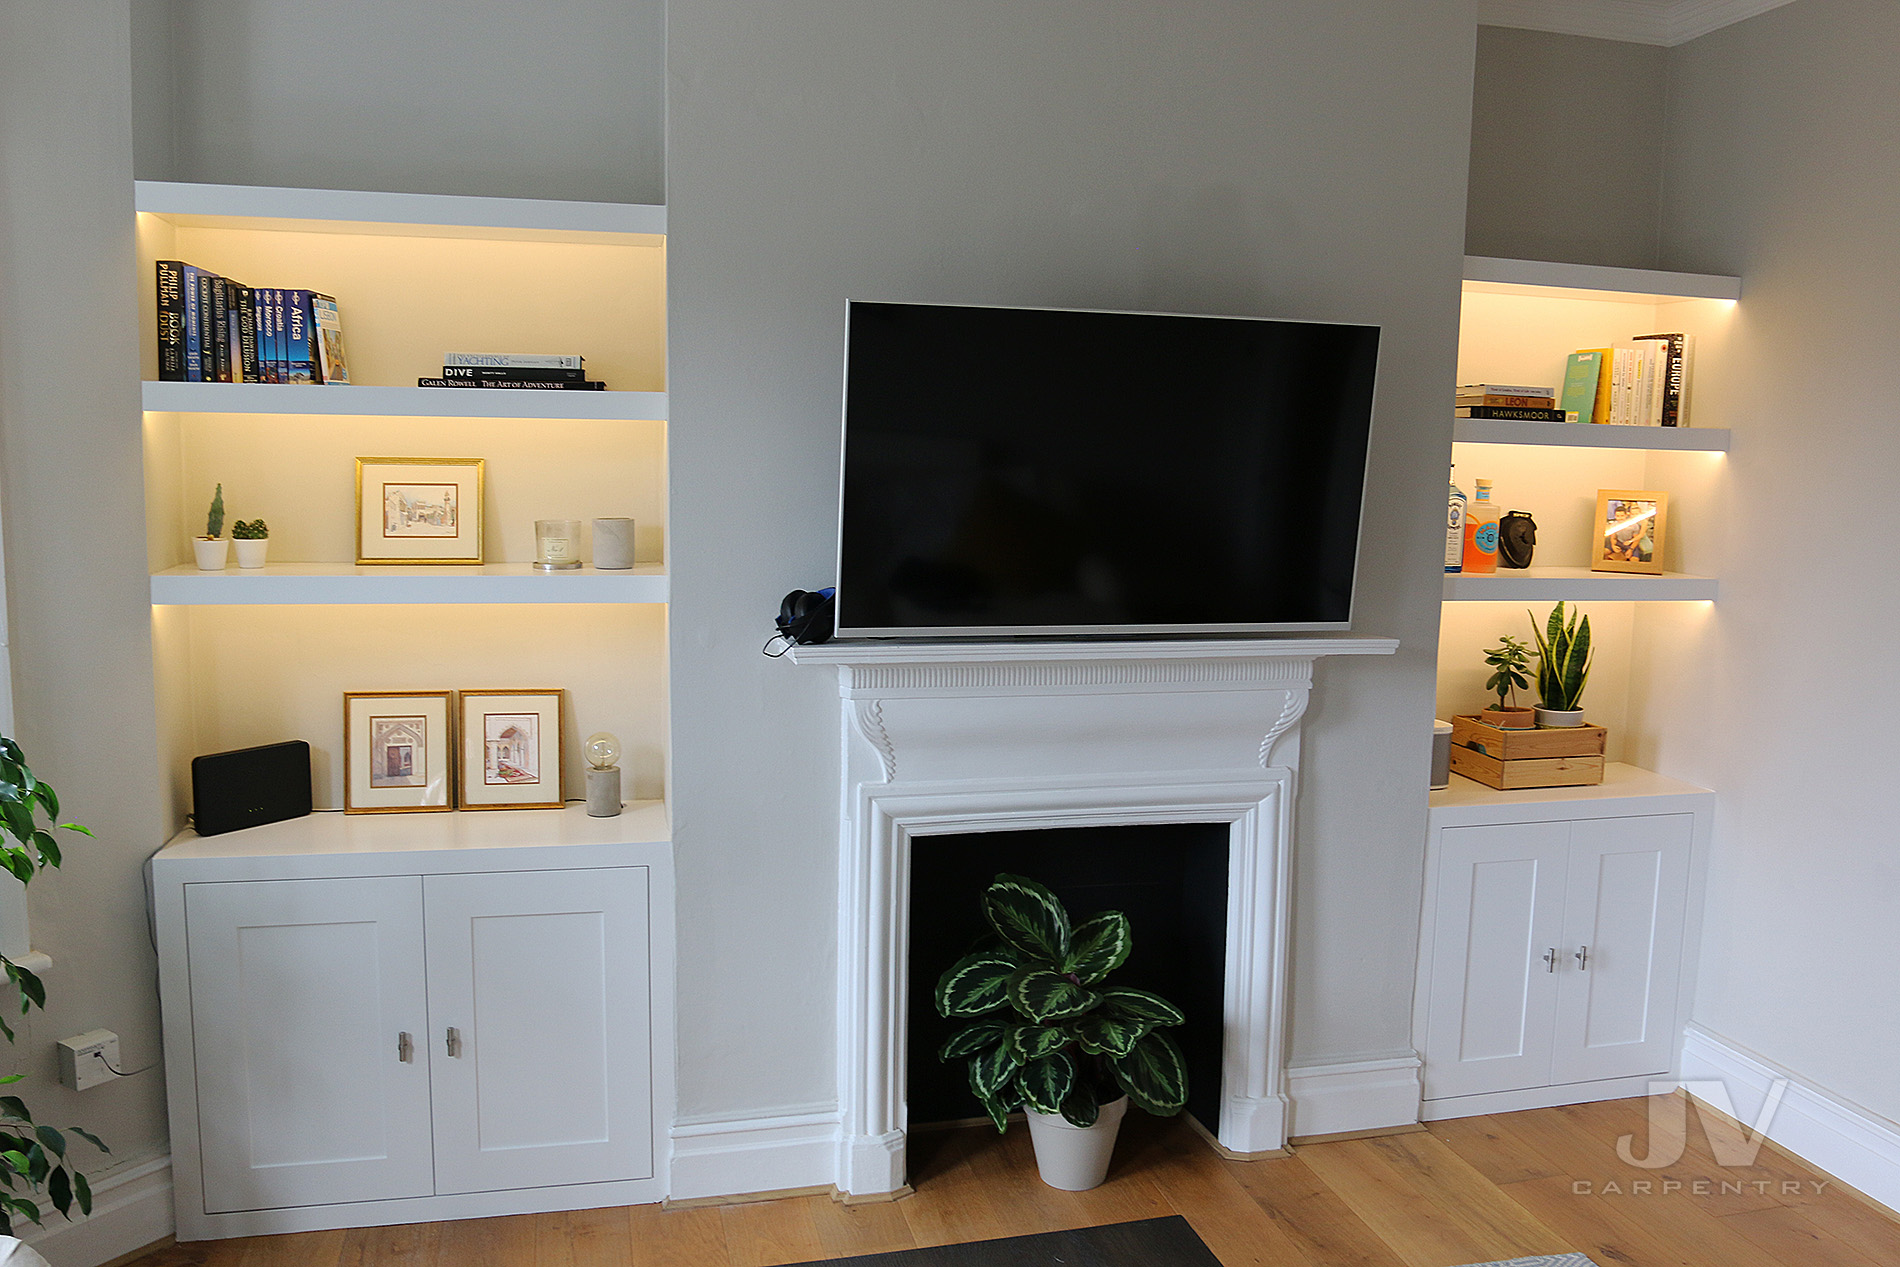 alcove bookshelves with light and cabinet either side of the chimney breast